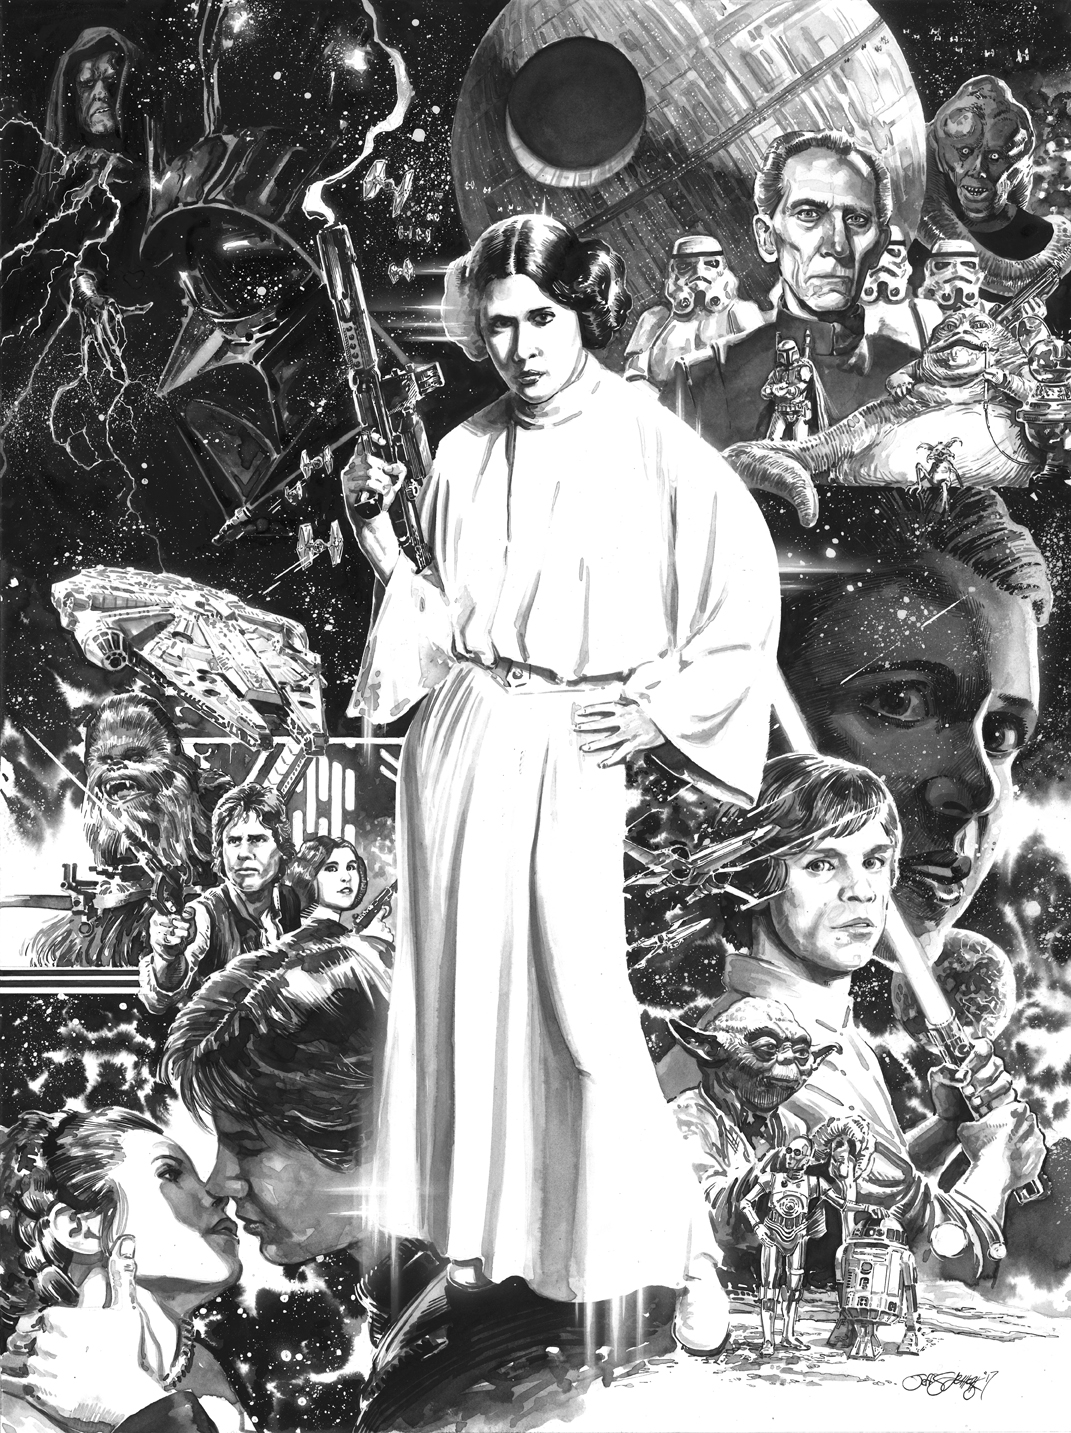 Princess Leia, Pen & Ink, inking, comic art, star wars, science fiction